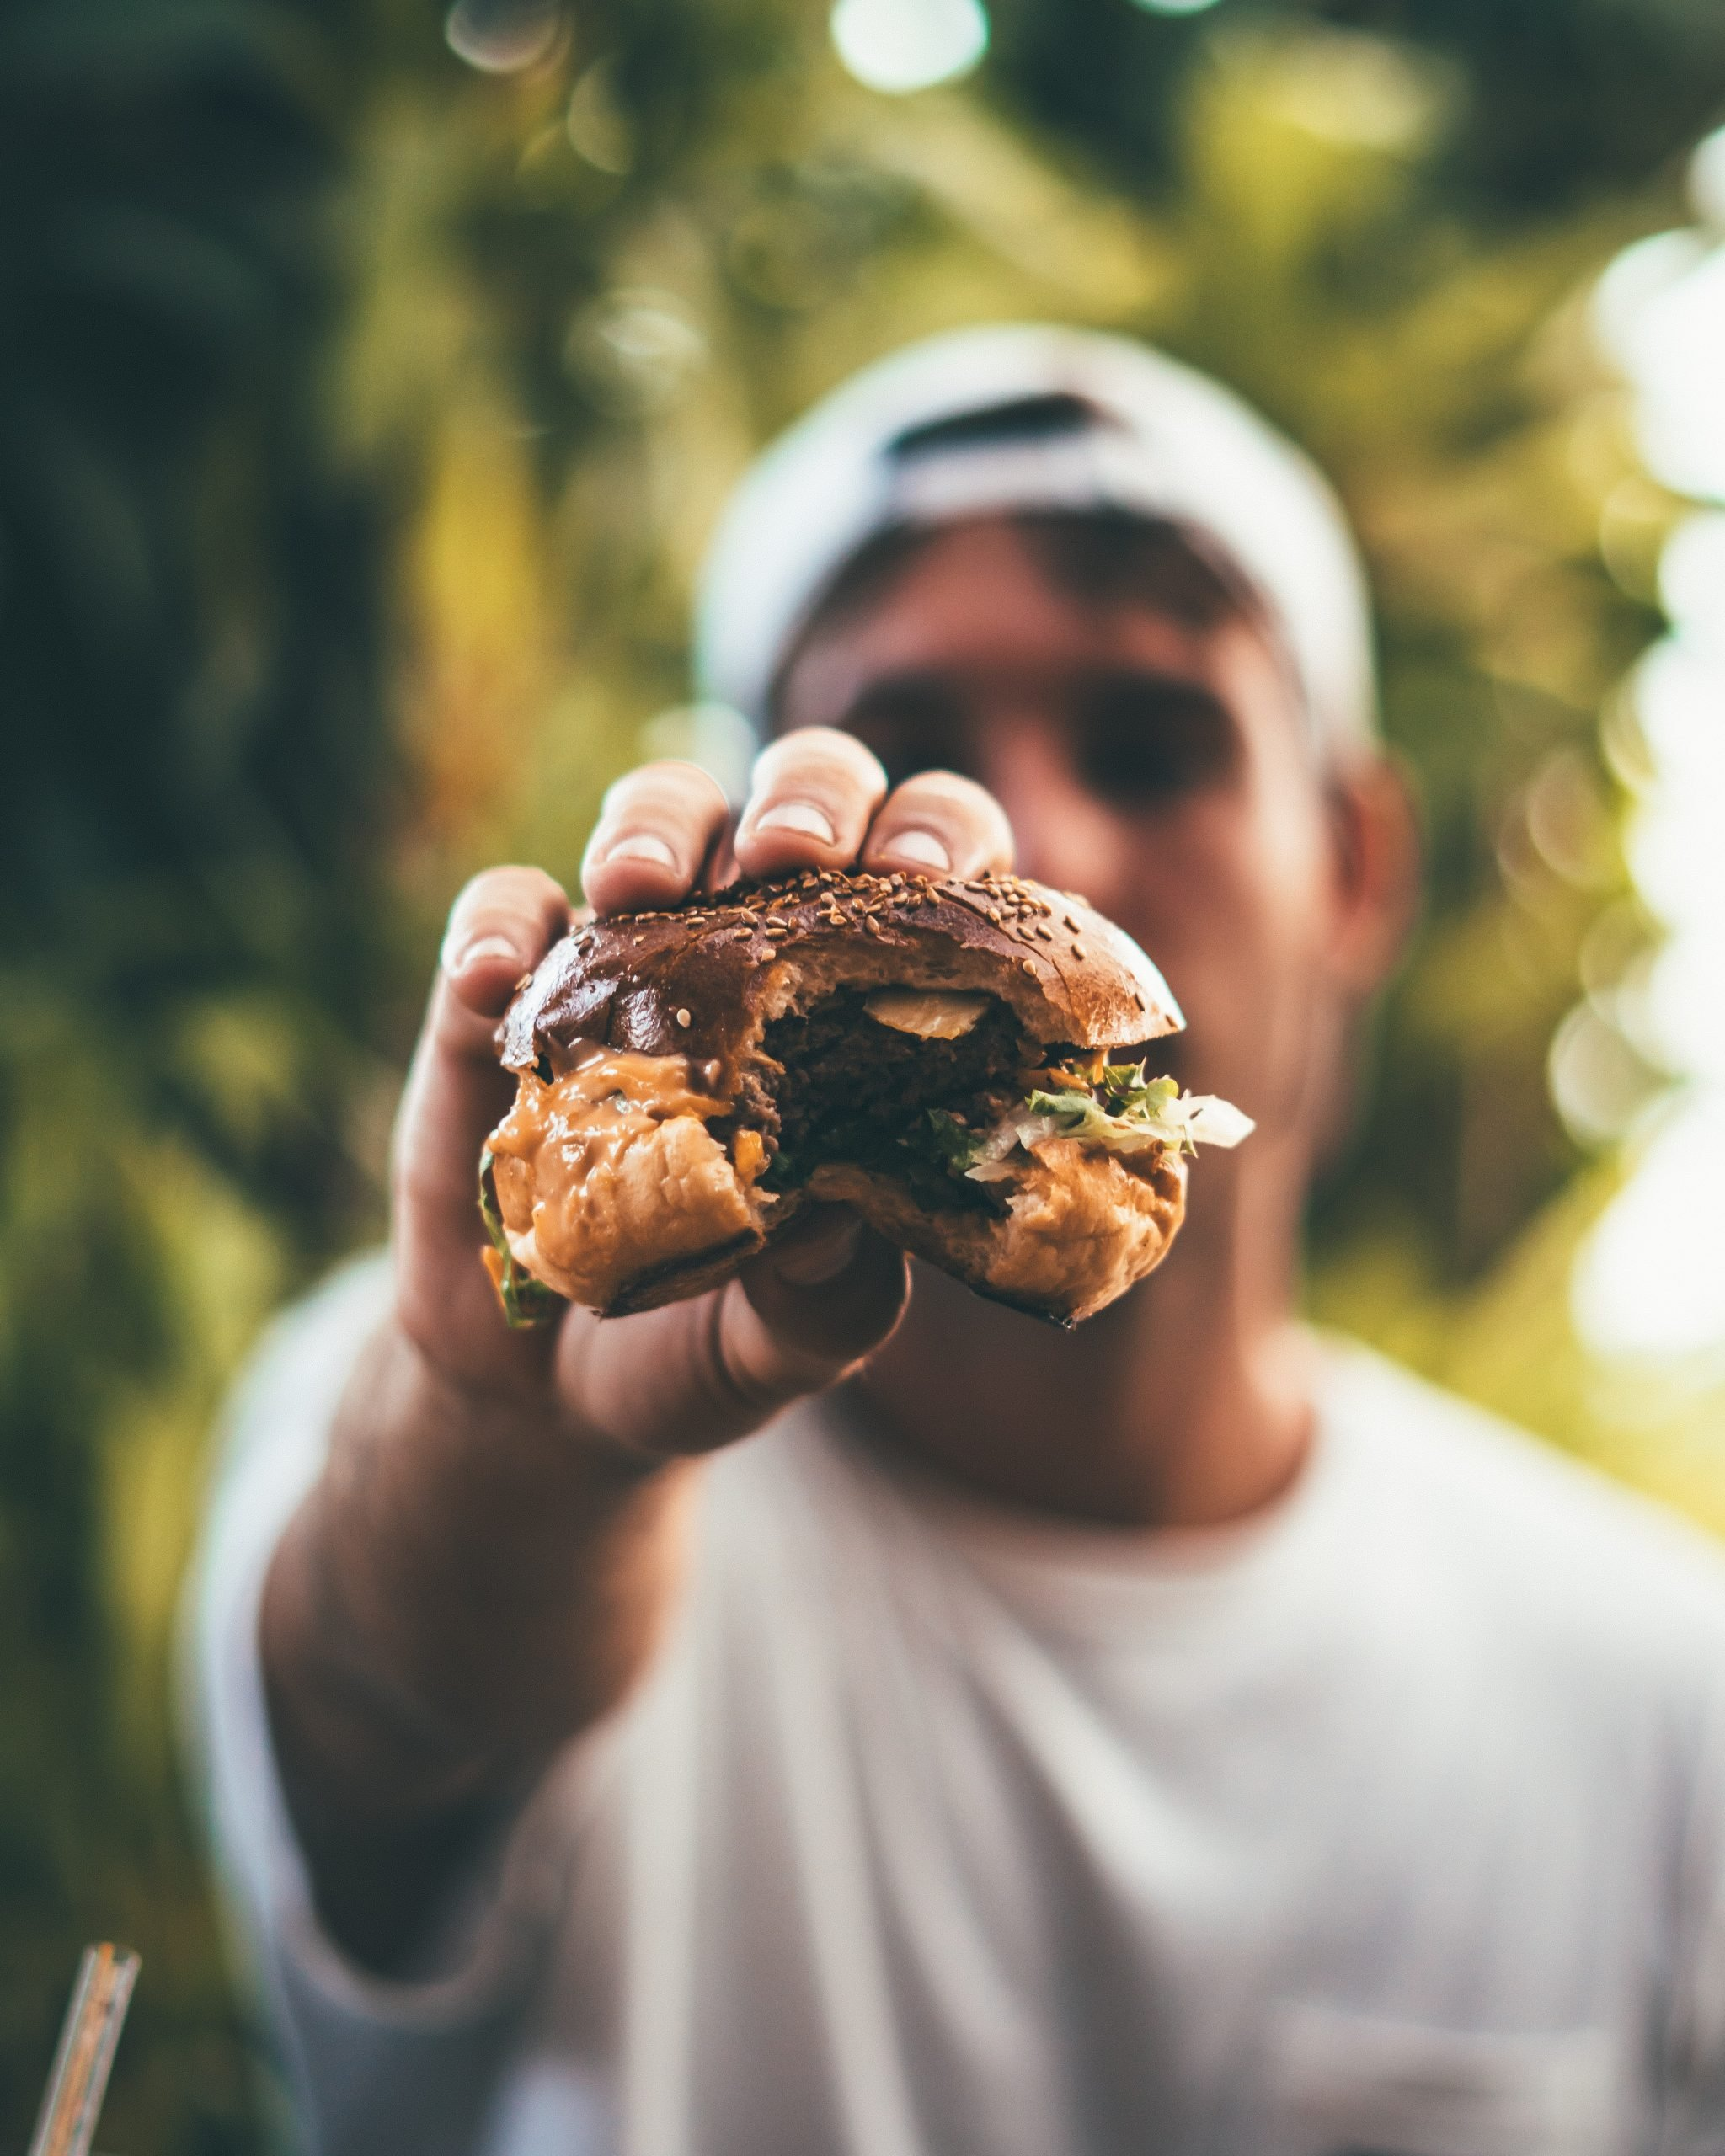 Guy holding a cheeseburger with a bite taken out